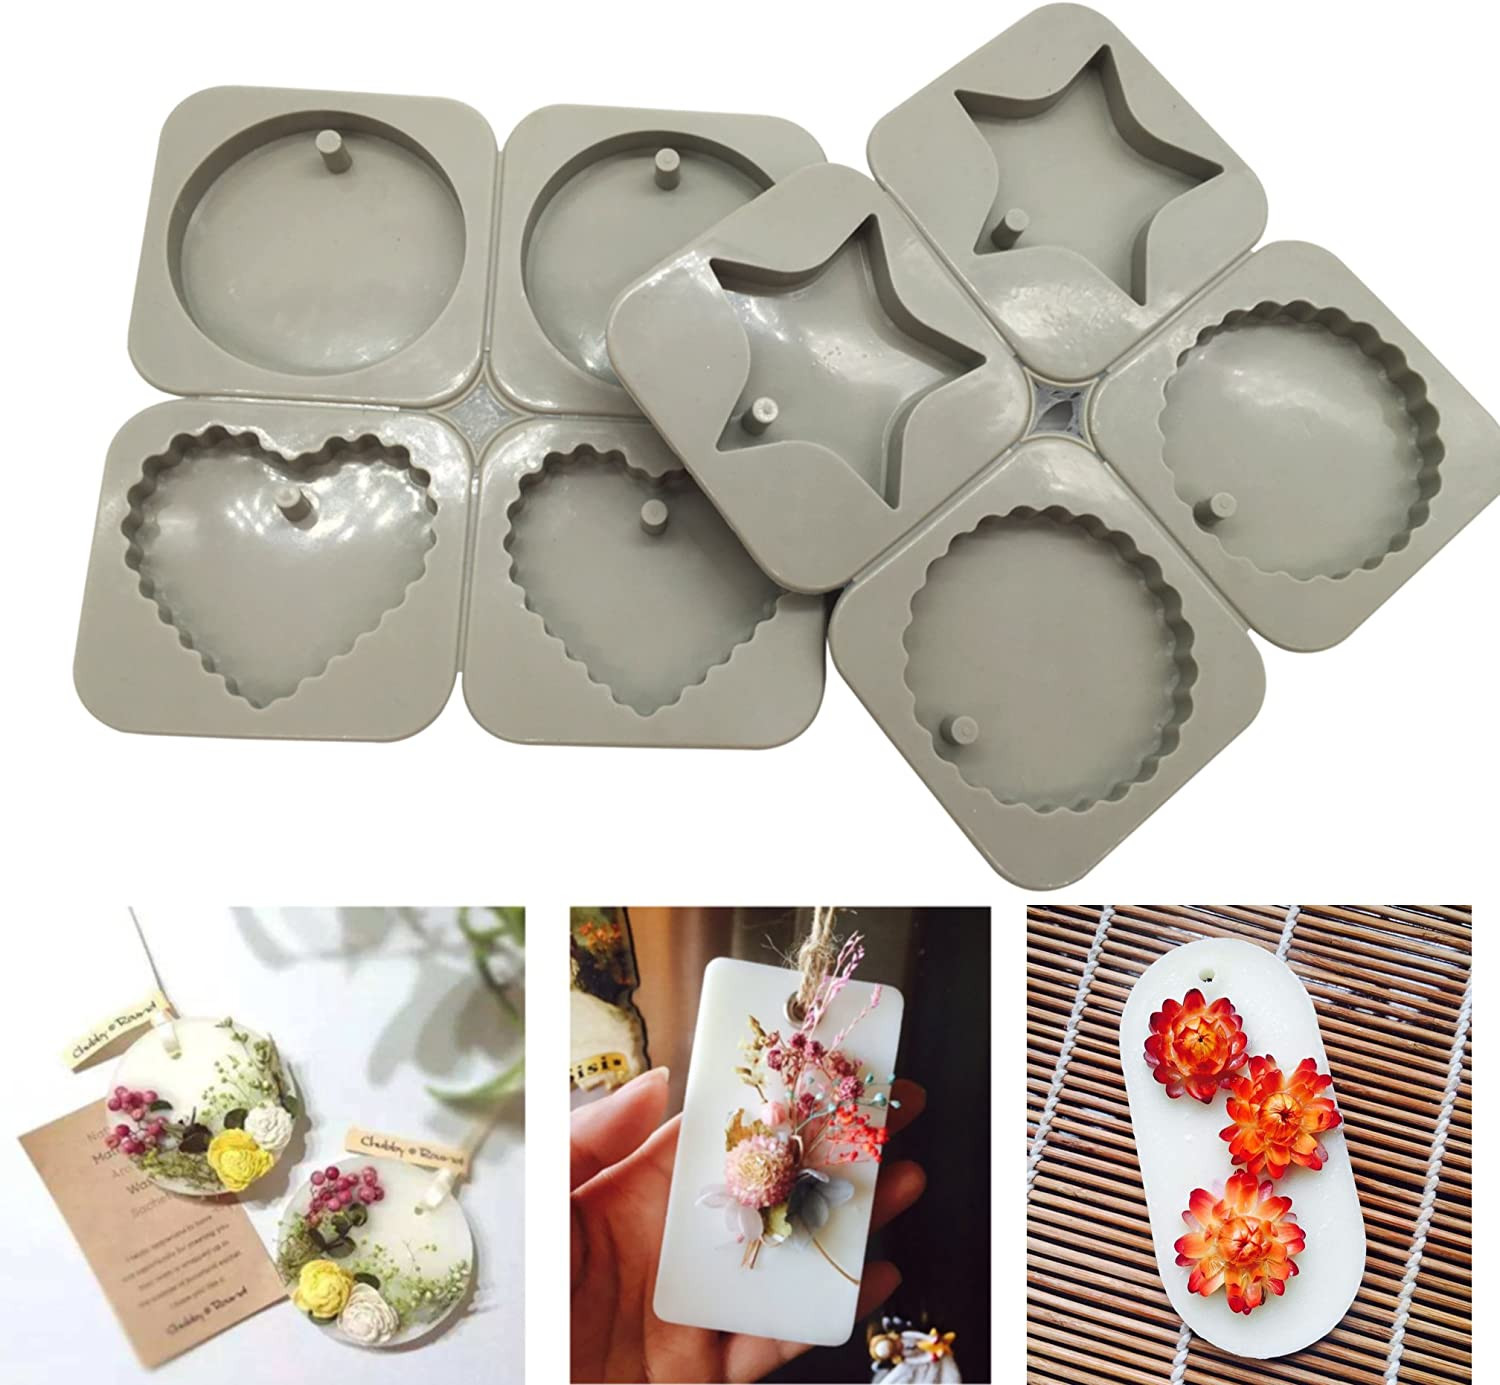 Resin Casting Molds 2pcs//set Silicone Resin Jewelry Molds Making with Hanging Hole for DIY Jewelry Craft Making